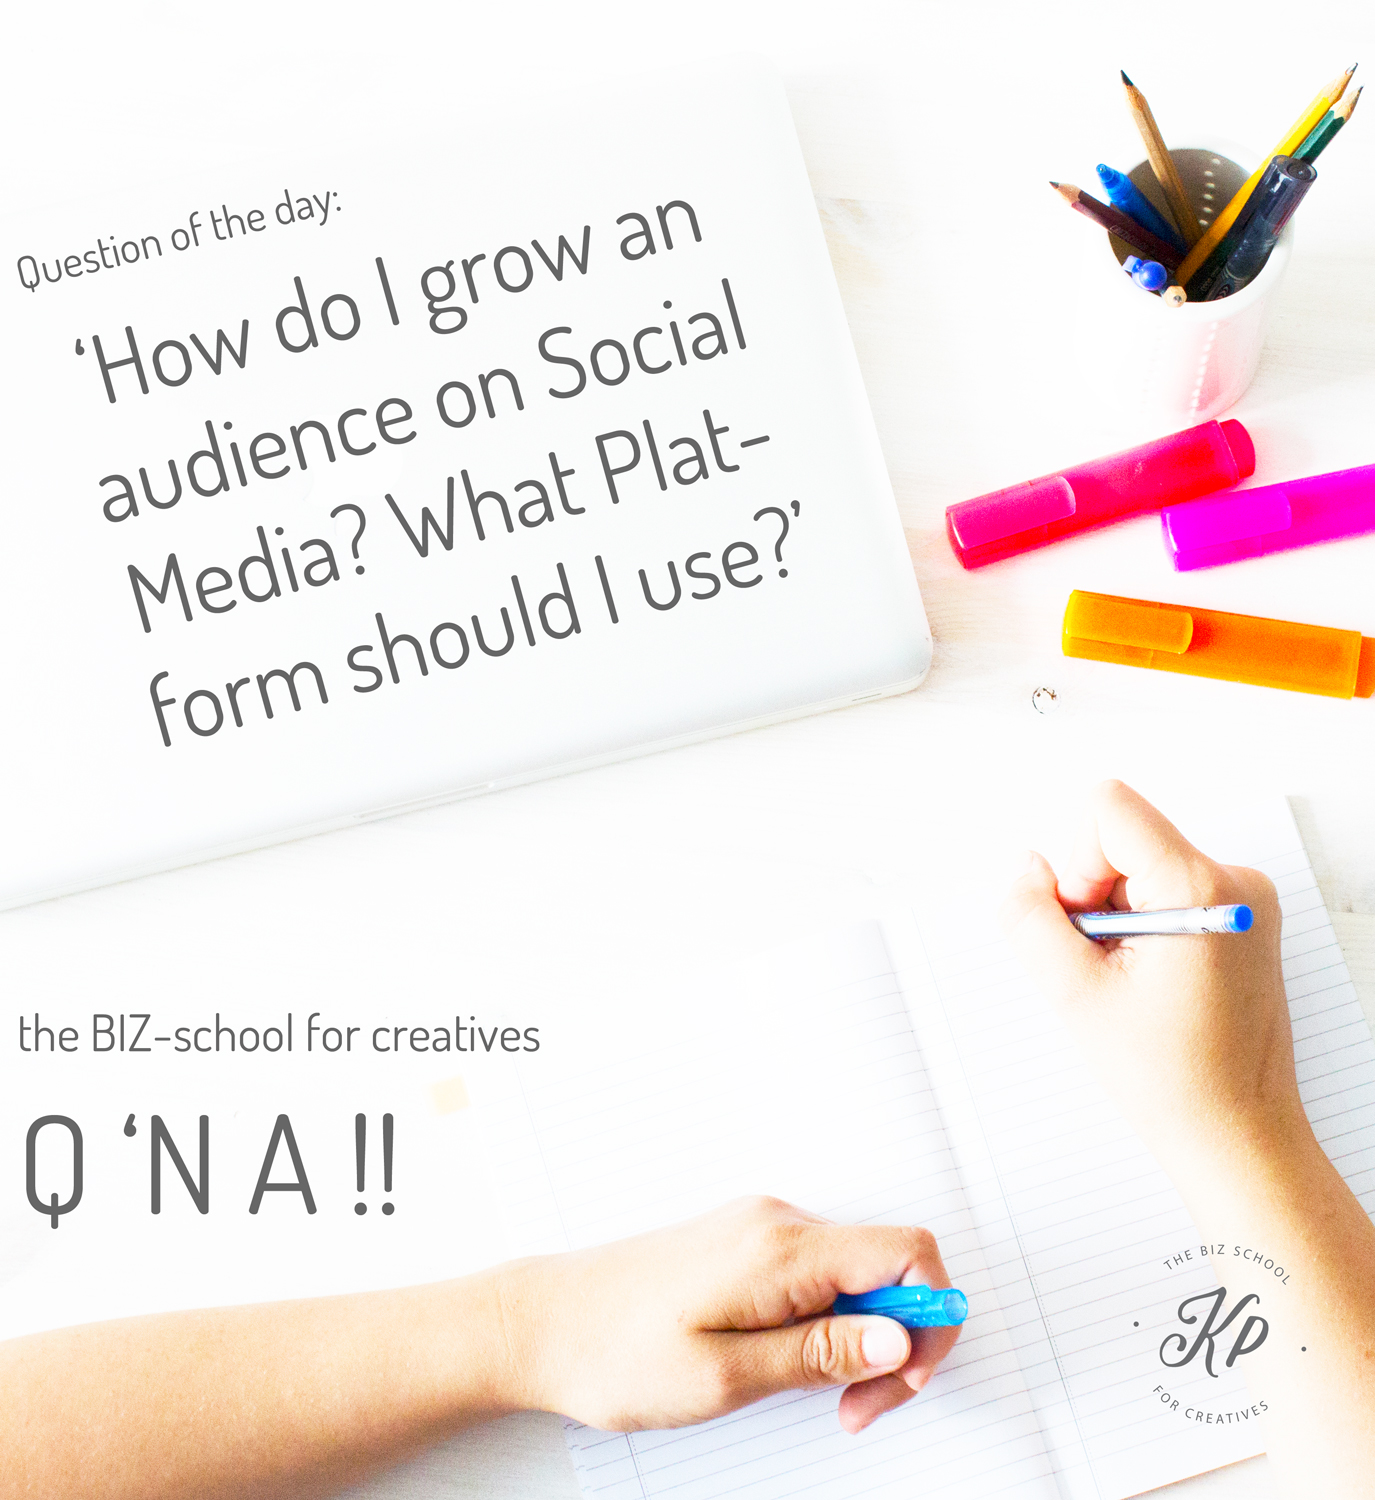 the BIZ-school for creatives Q 'N A, Question of the day: 'How do I grow an audience on Social Media? What Platform should I use?' Read the full answer at www.kerstinpressler.com